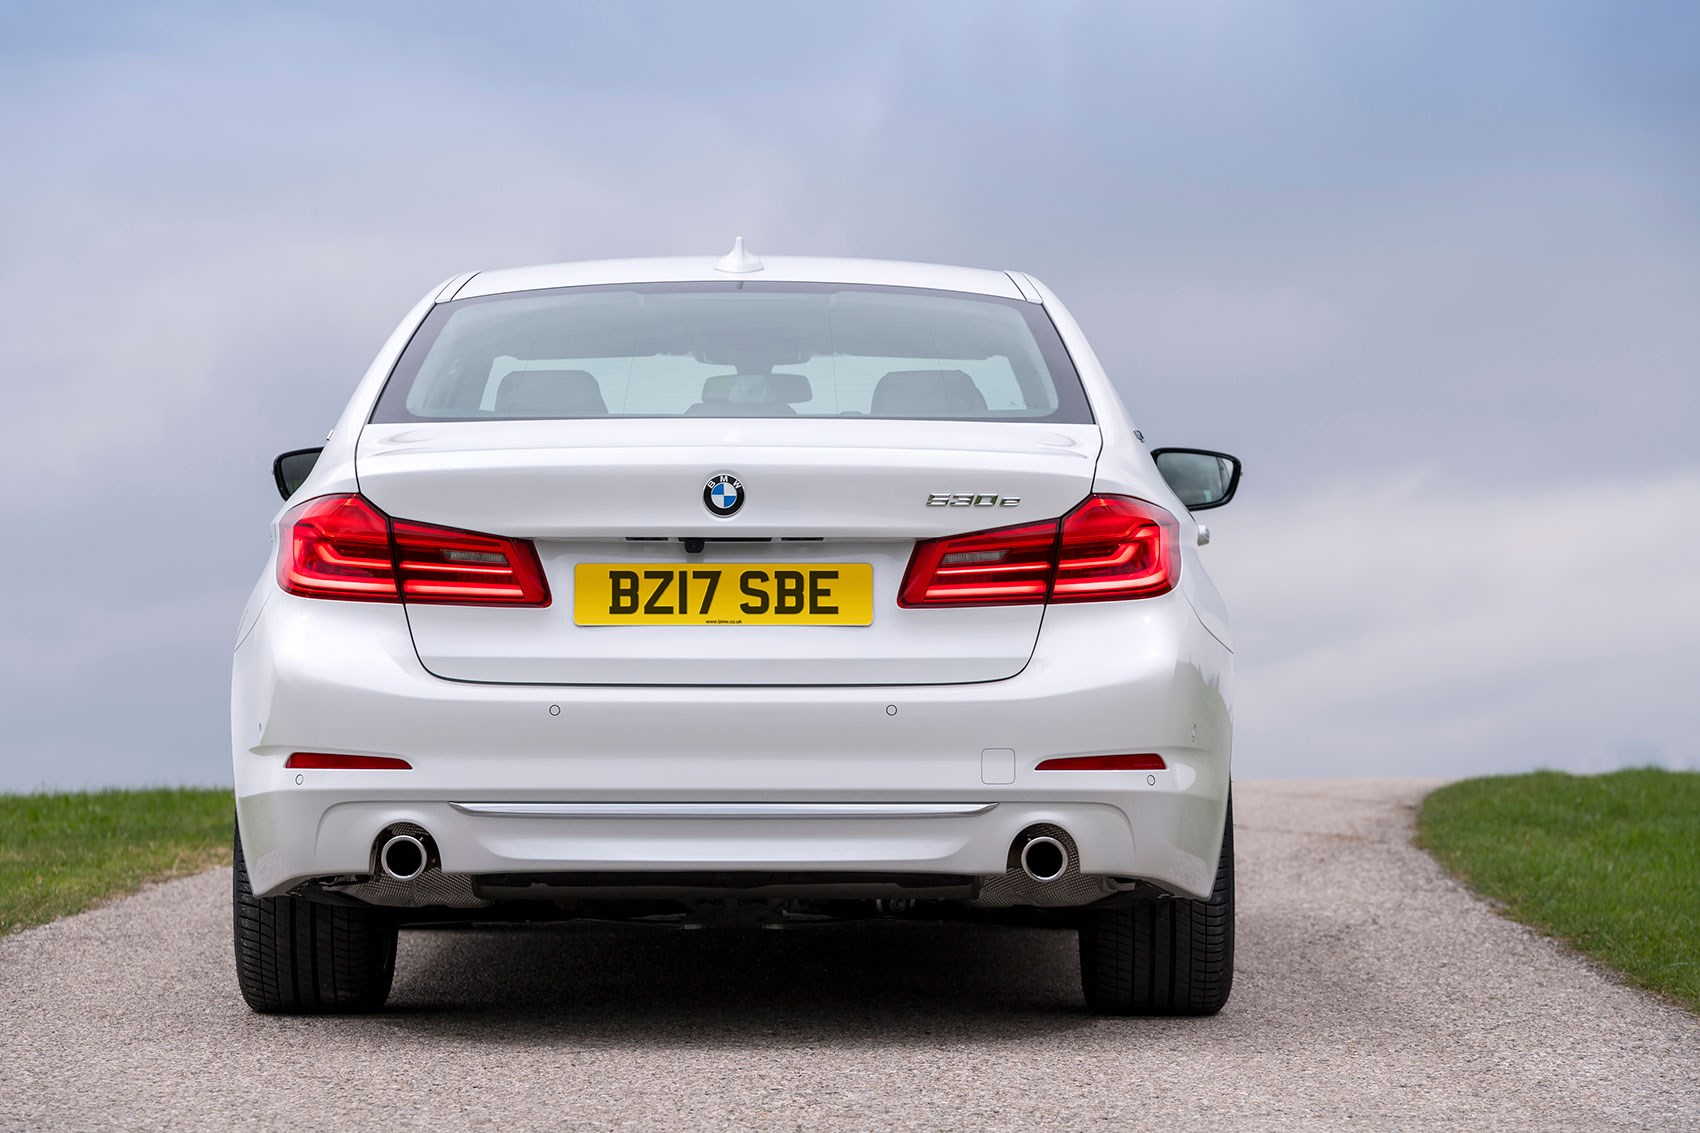 A BMW 530e or a 530d? Our 5-series review decides